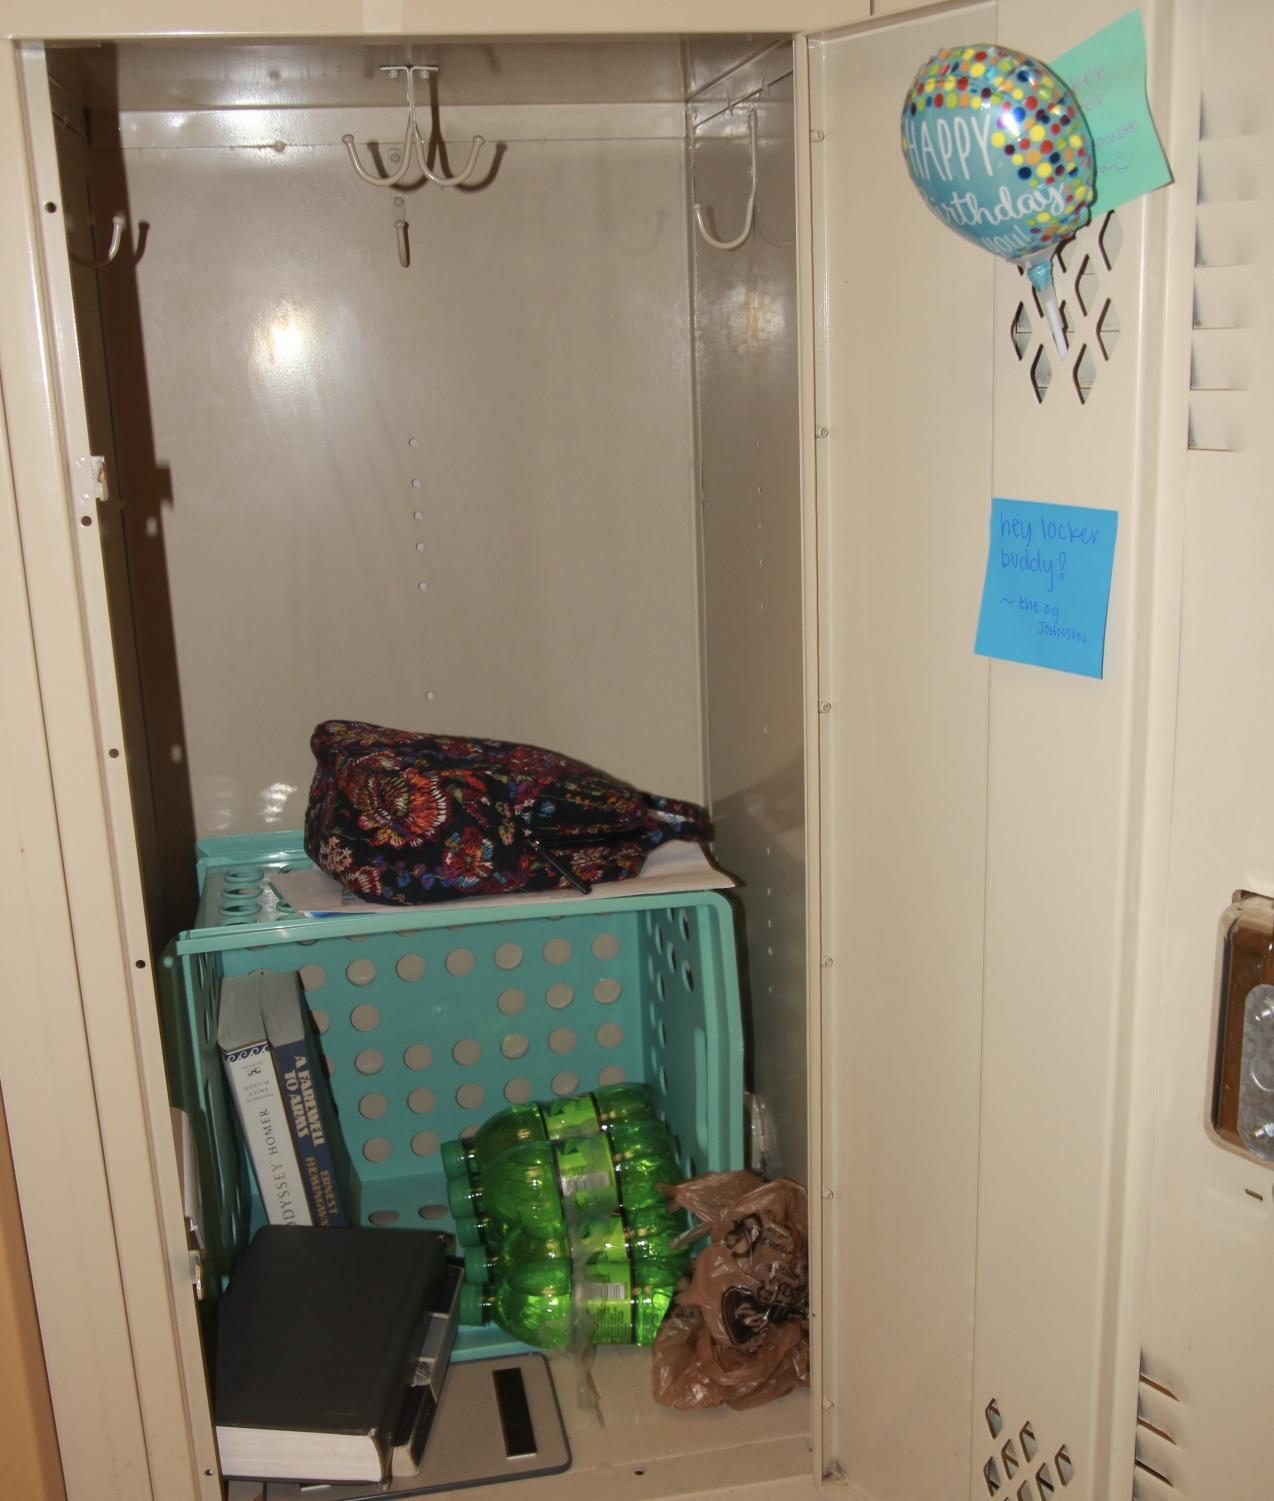 A high schooler's locker is often messy compared to that of a middle schooler's at WCA.